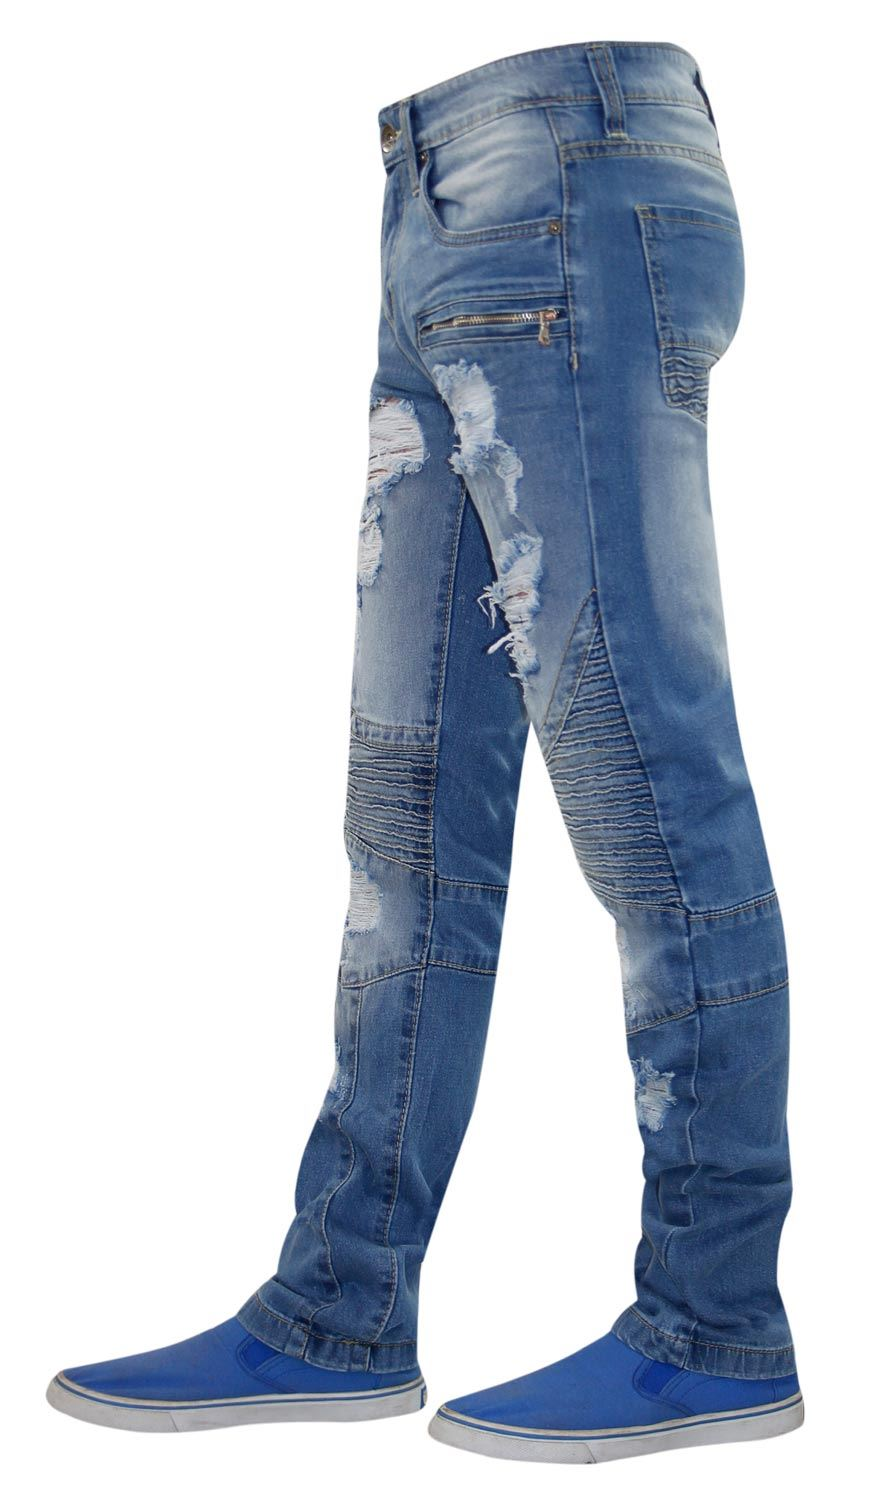 Mens-Ripped-Jeans-Slim-Fit-Distressed-Denim-Biker-Pants-Casual-Cuffed-Trousers thumbnail 3